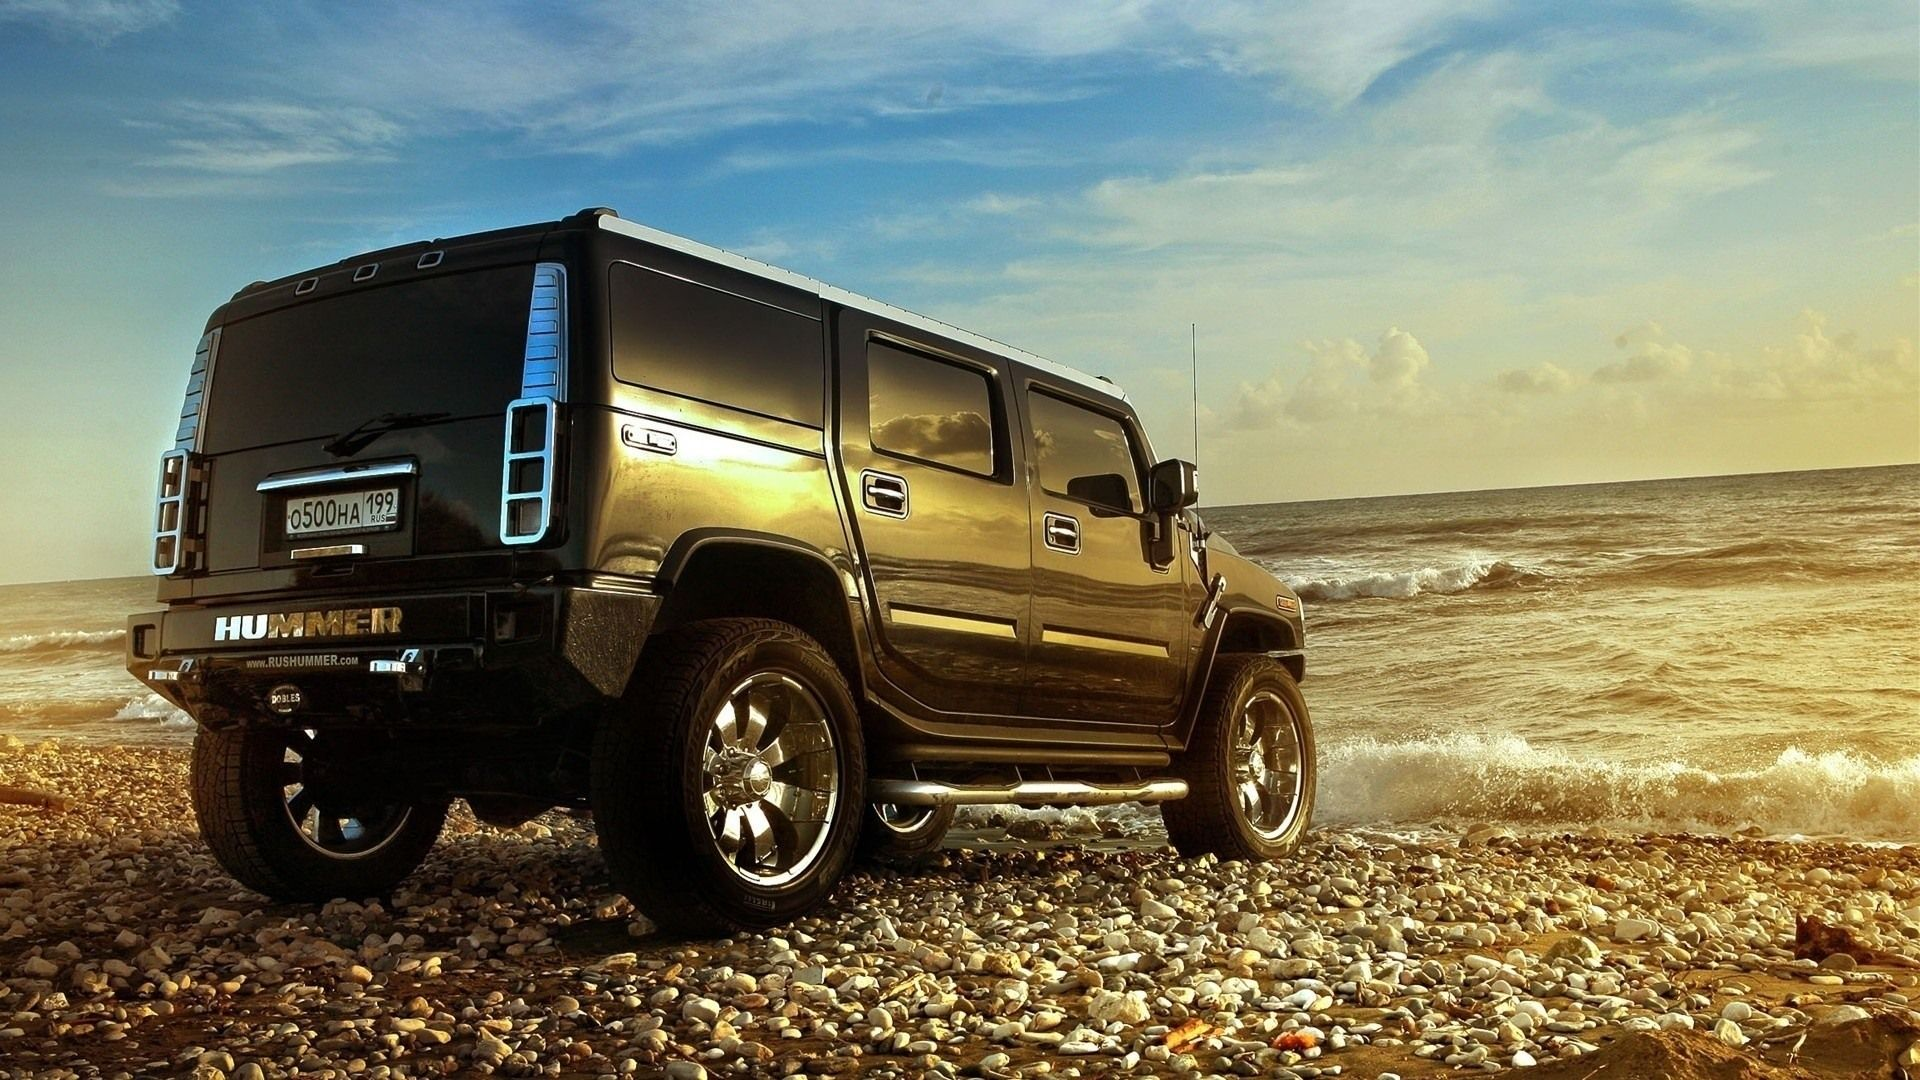 Pin by walls auto on Cool Car Wallpapers | Pinterest ... | hummer car racing